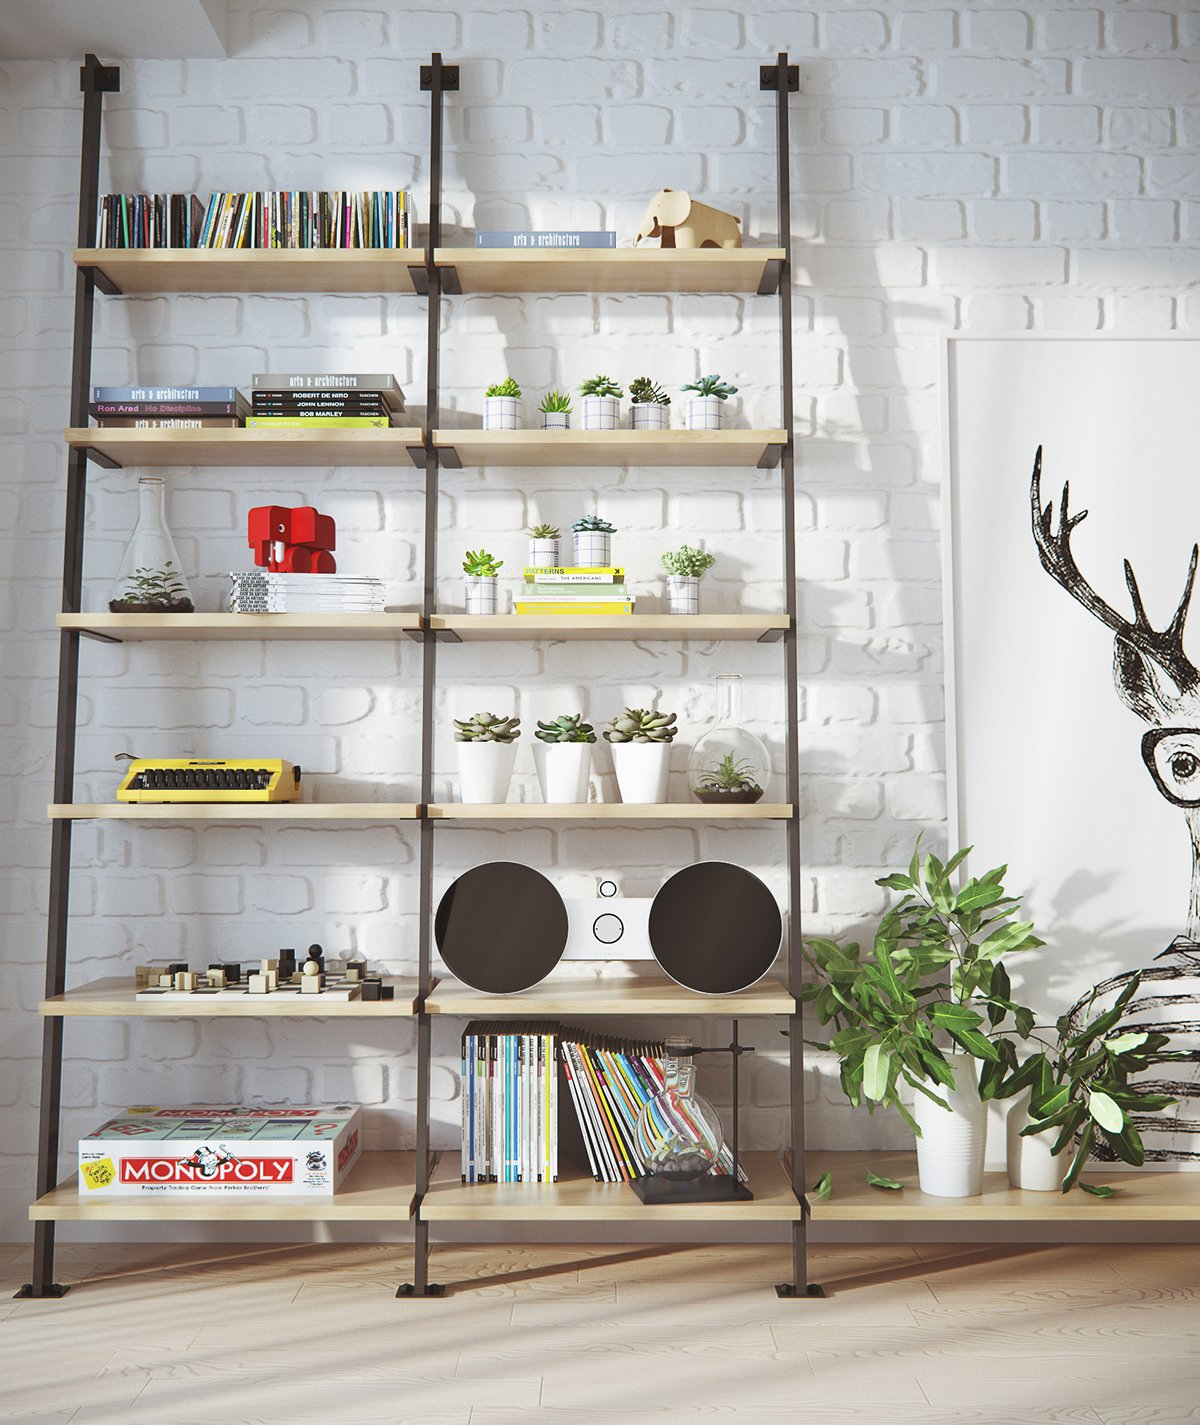 Industrial Bookshelves Greenery Stereo - 2 stunningly beautiful homes decorated in modern scandinavian style